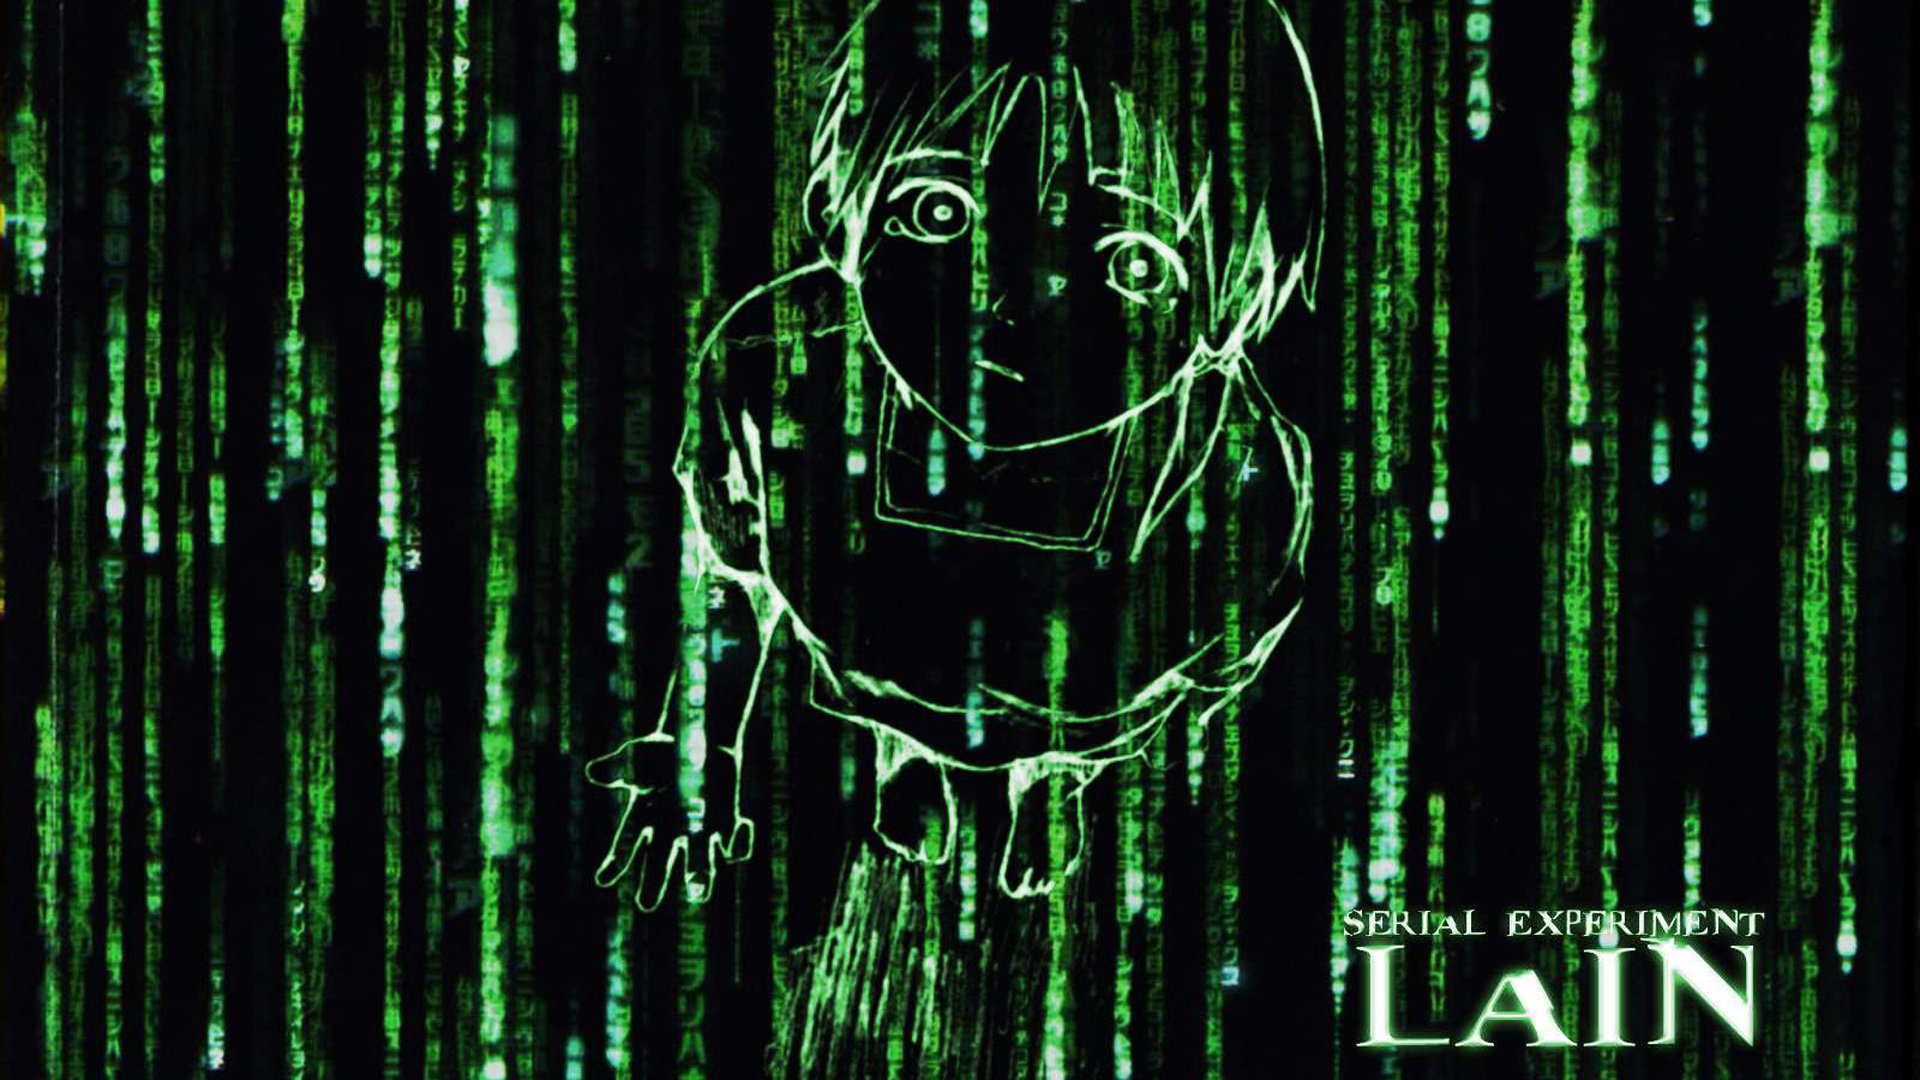 Download full hd 1920x1080 Serial Experiments Lain computer wallpaper ID:127924 for free